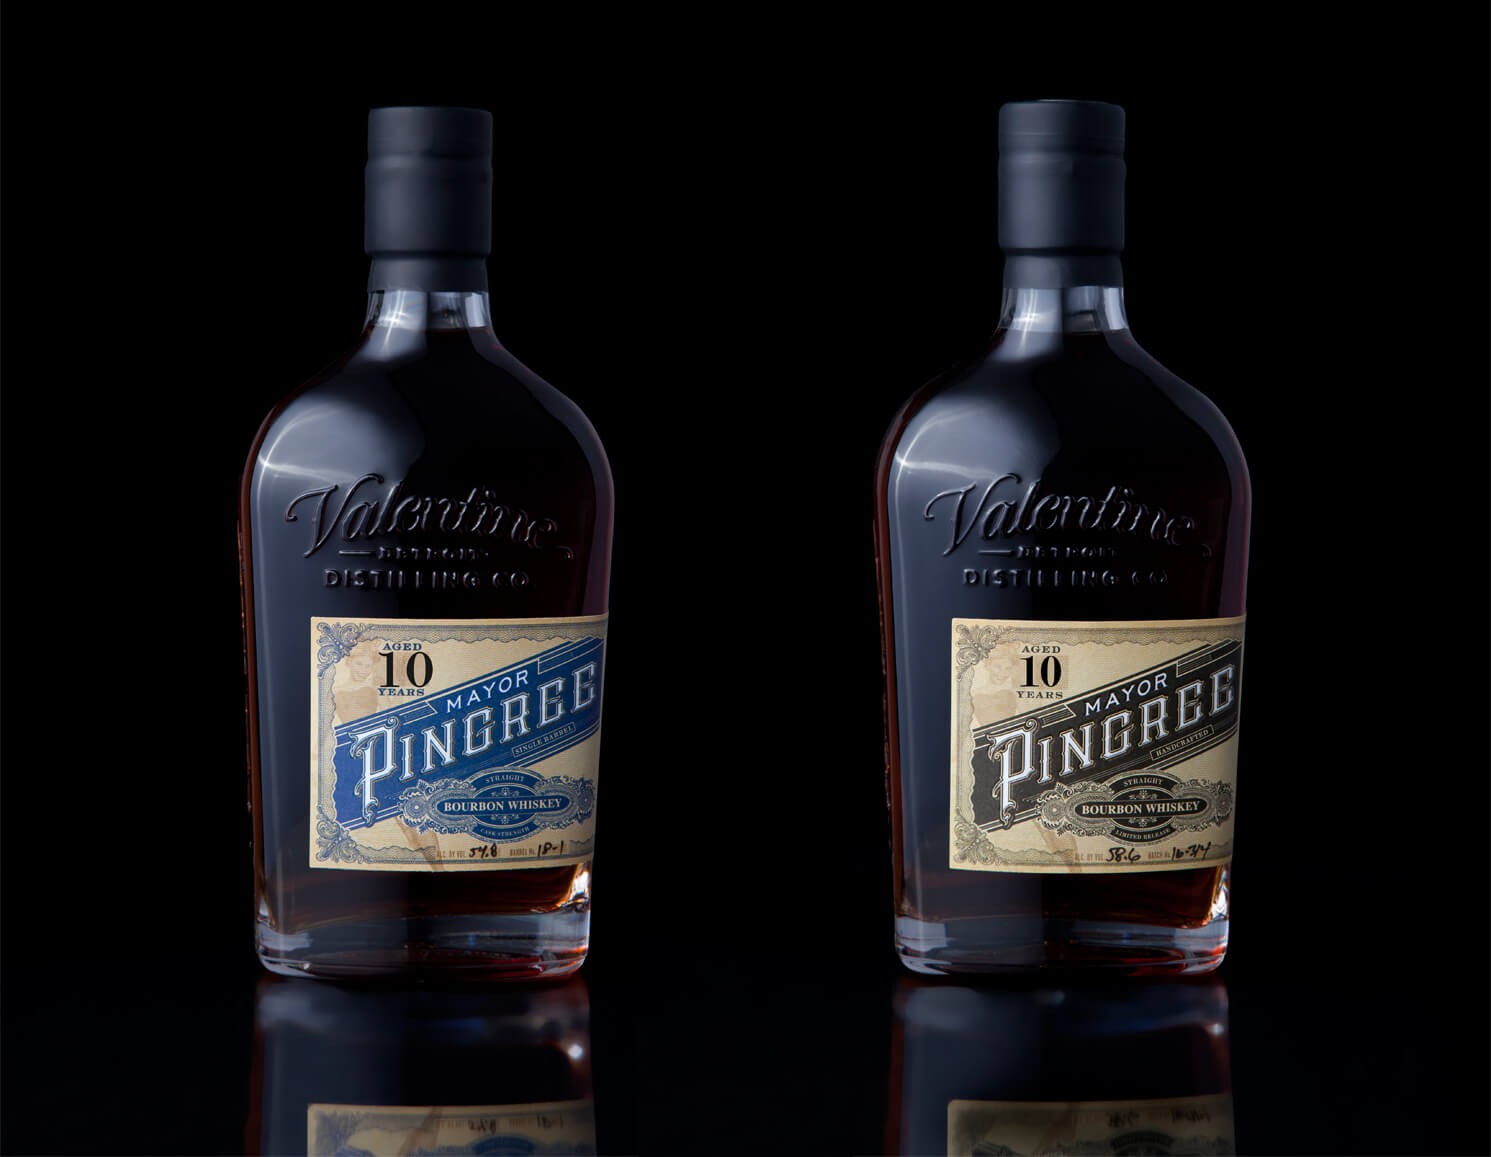 Valentine Distilling Co. Mayor Pingree bourbons - What's Shakin' week of May 15, 2017